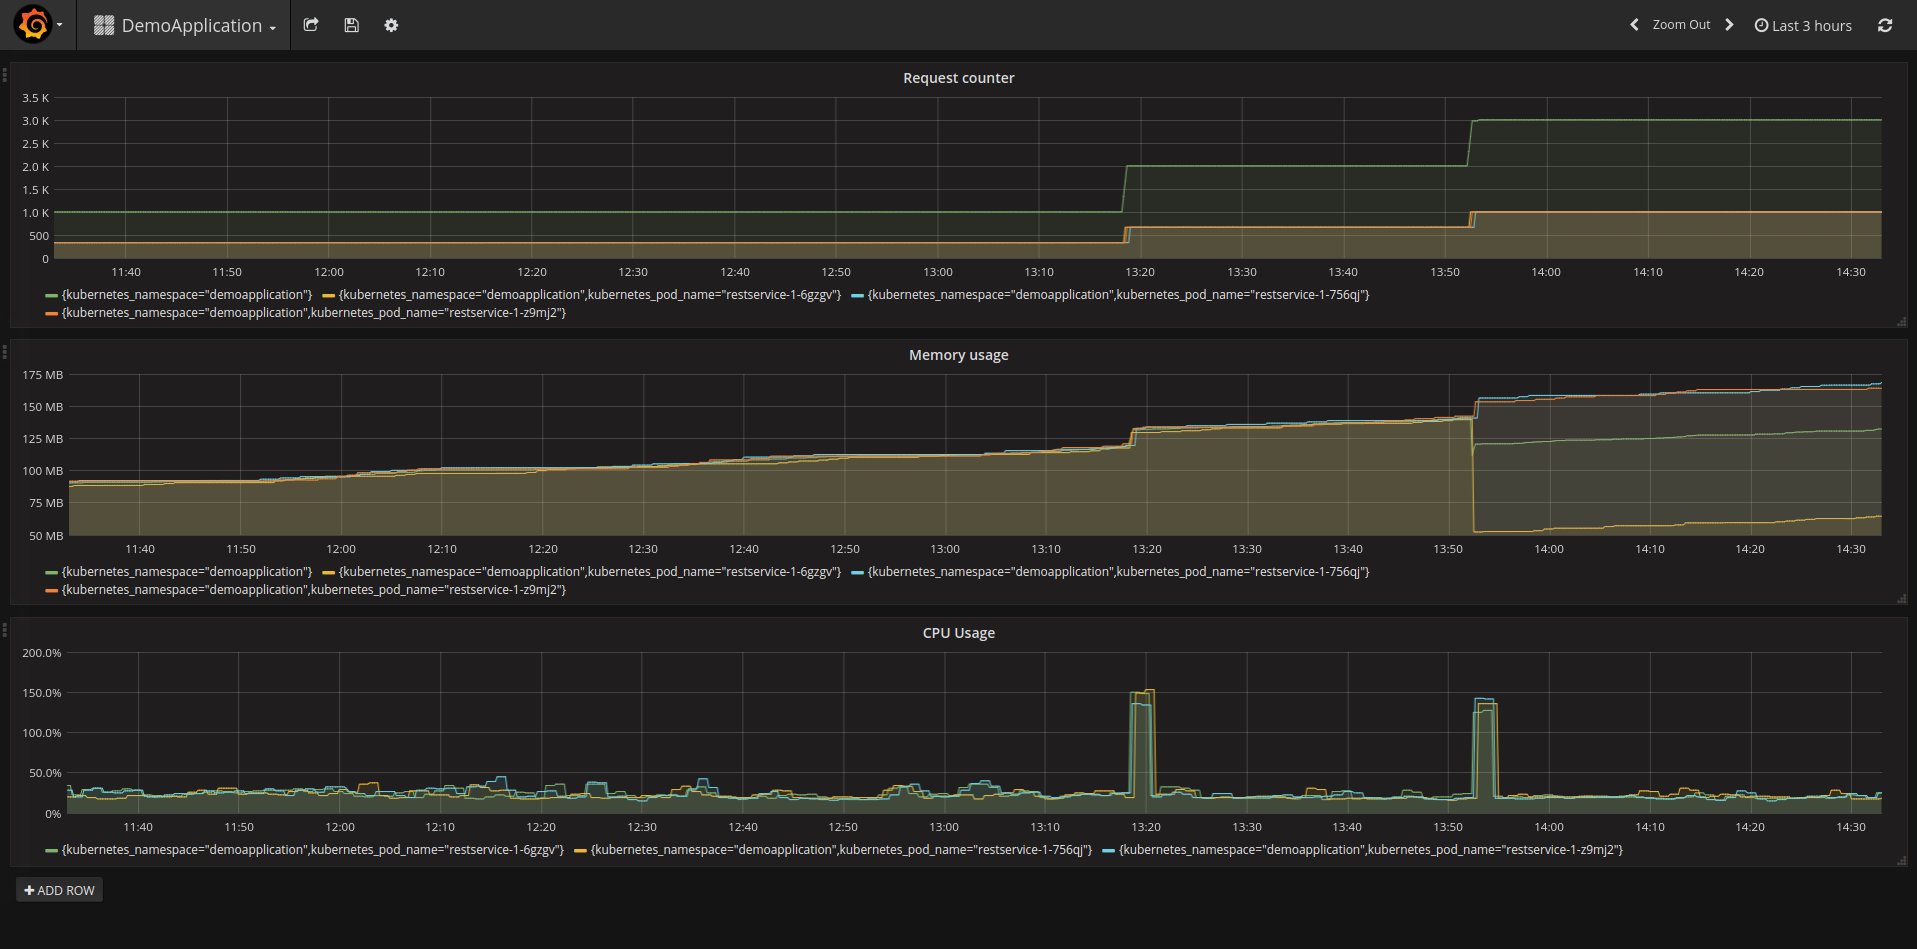 assets/2018-01-19-openshift_application_monitoring/grafana_import_dashboard3.png